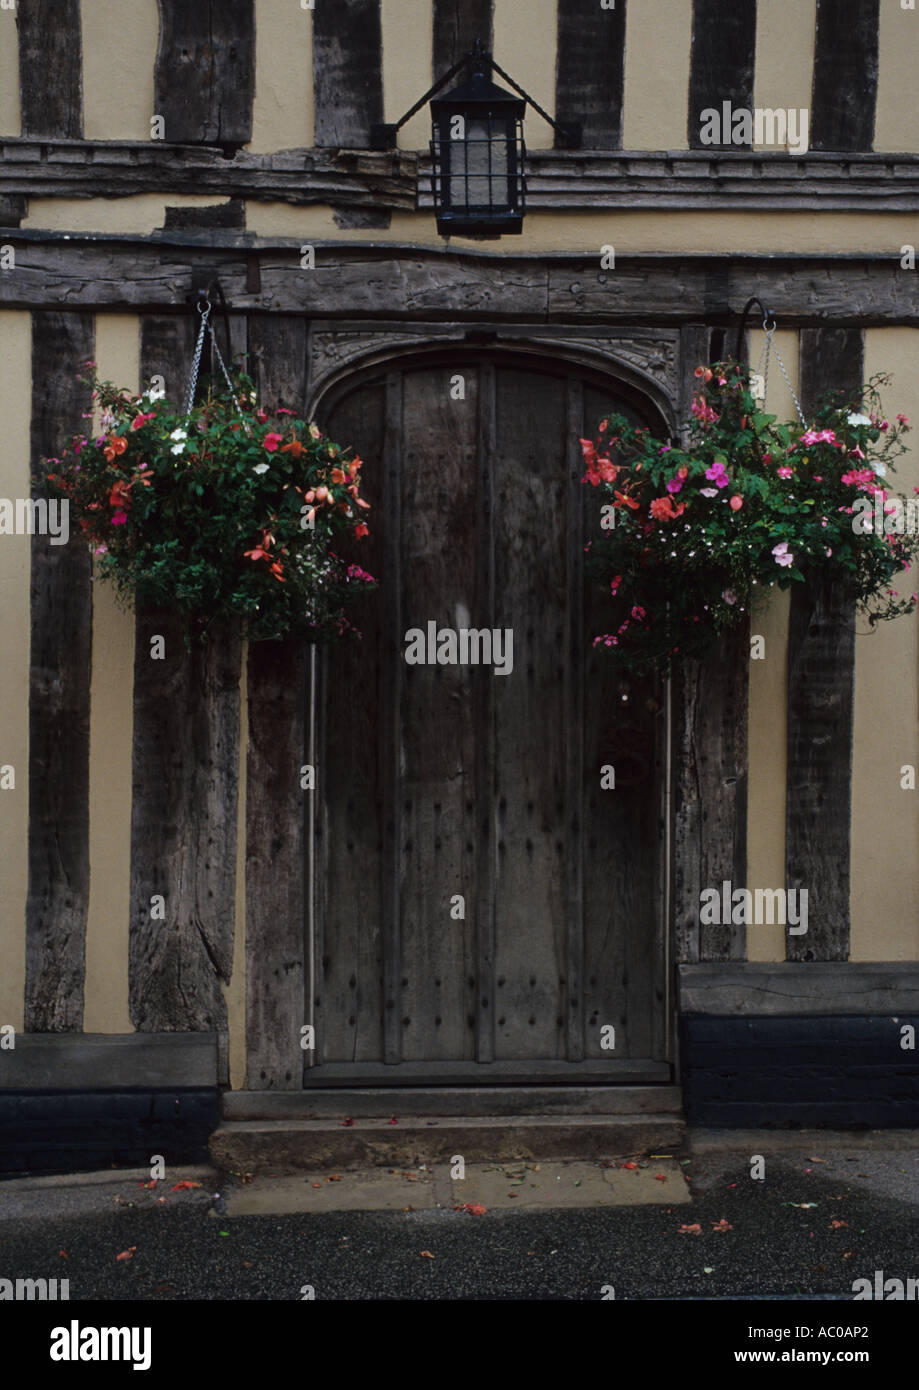 The old English village of Lavenham in Suffolk Uk Stock Photo